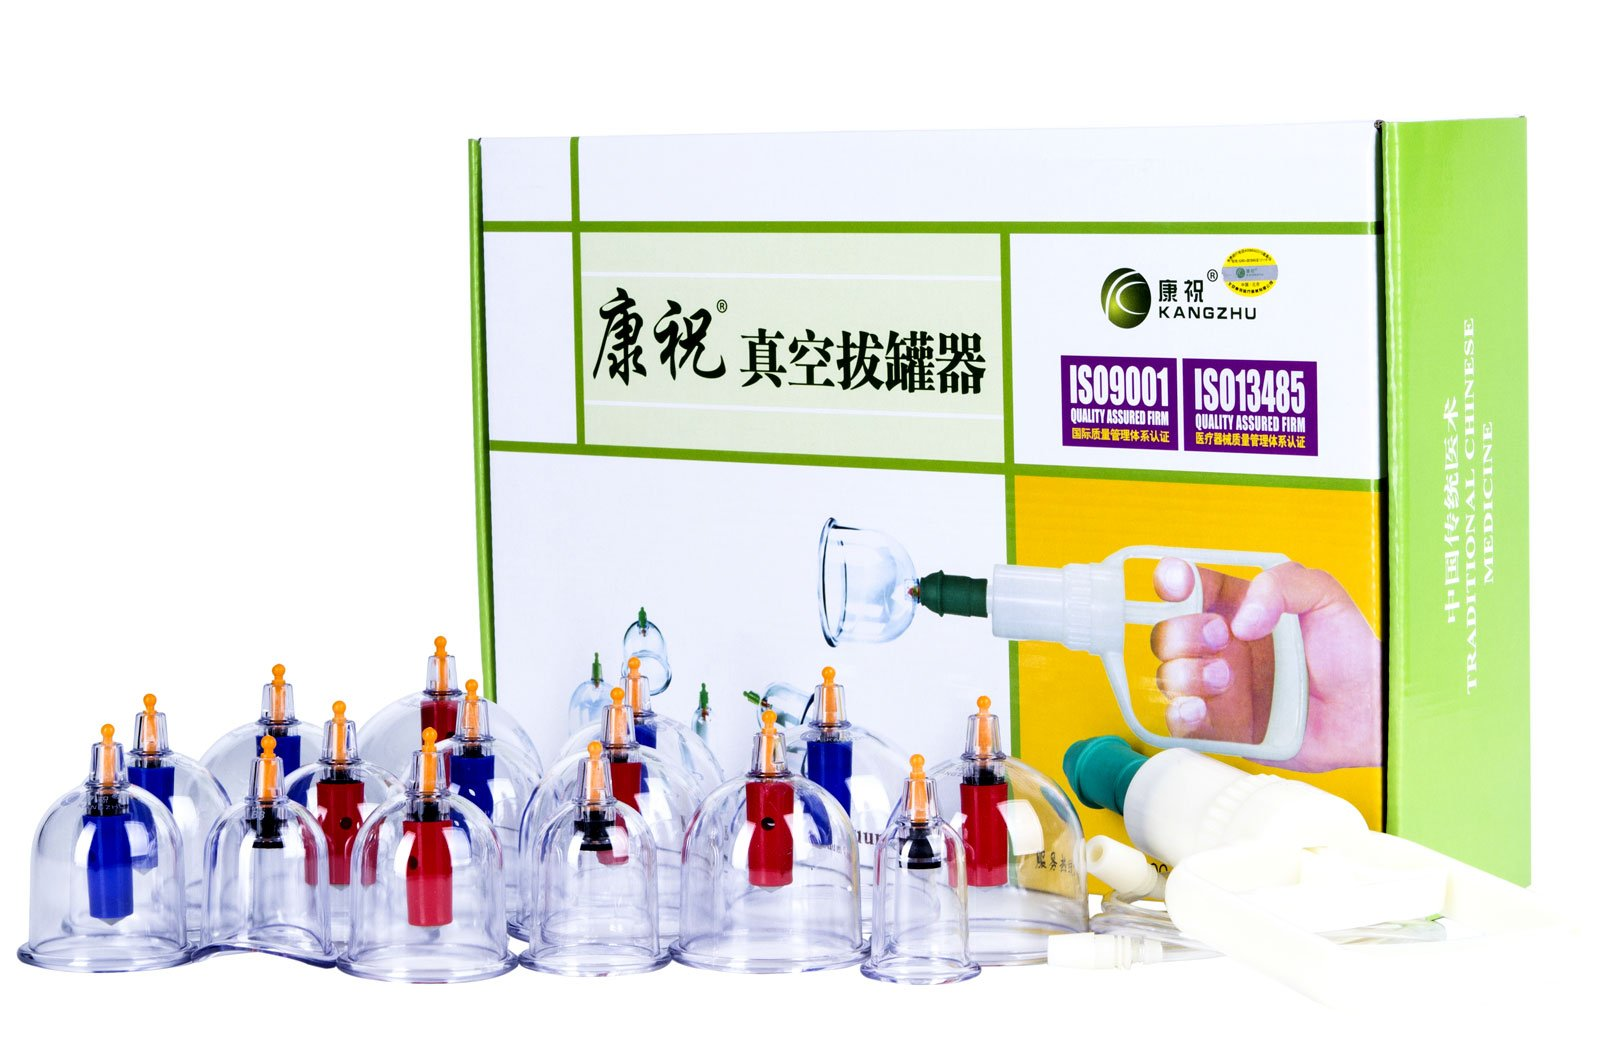 Kangzhu Professional Cupping Therapy Equipment Set with pumping handle 15 Cups & English Manual by Kangzhu